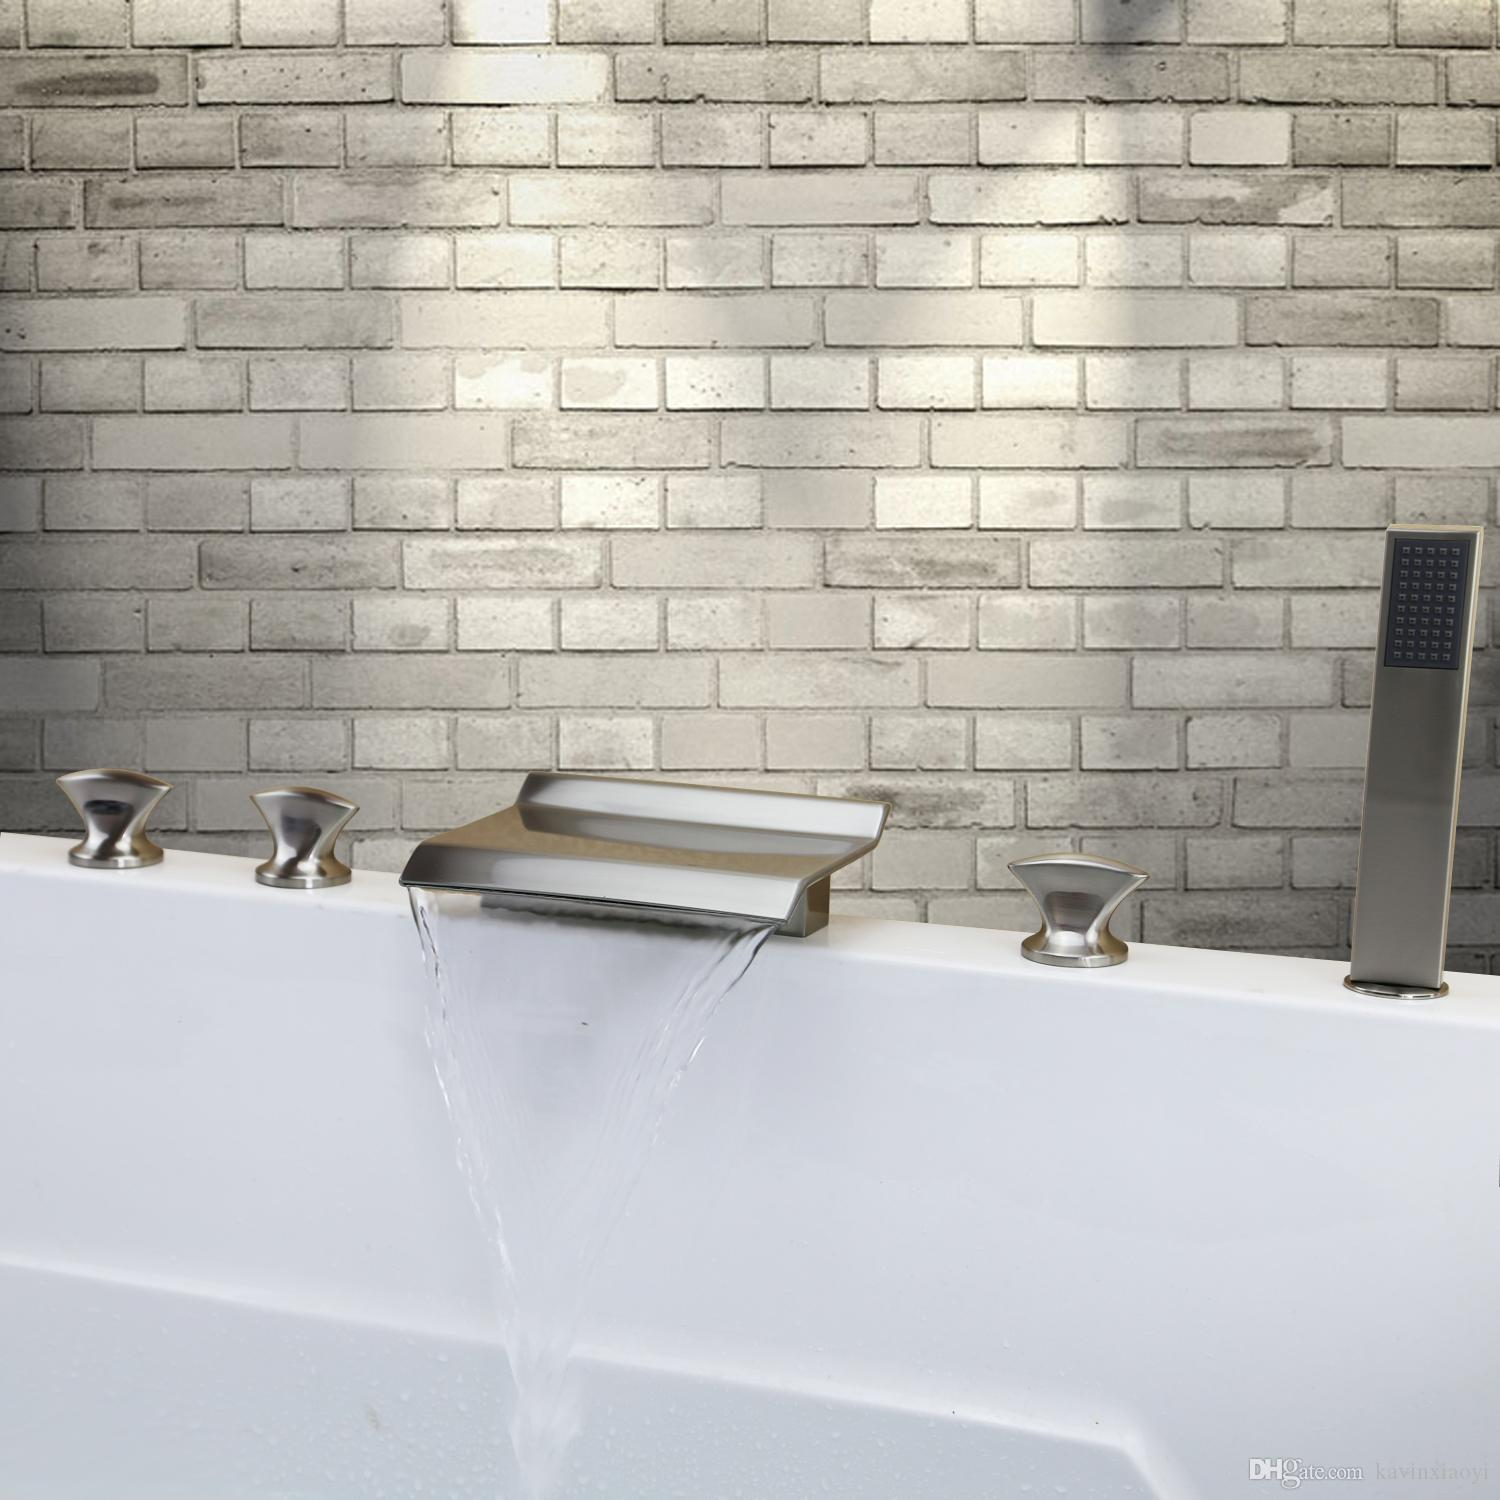 Brushed Nickel Tub Shower Waterfall Spout Faucet Roman Tub Bath ...